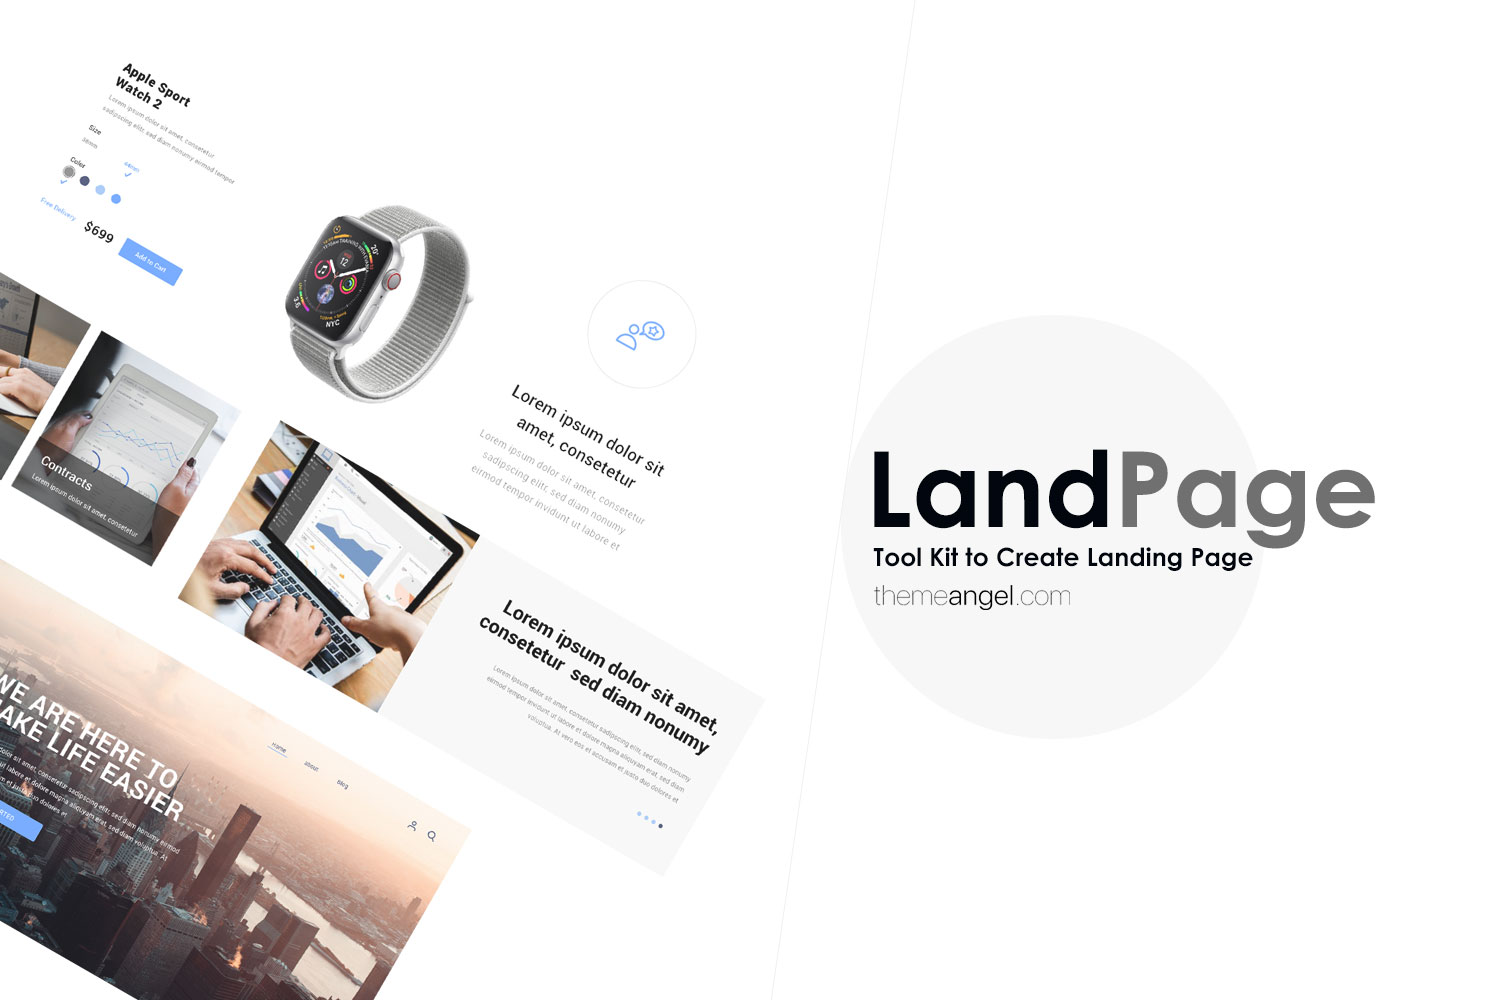 LandPage Kit - Create Your Very Own Landing Page